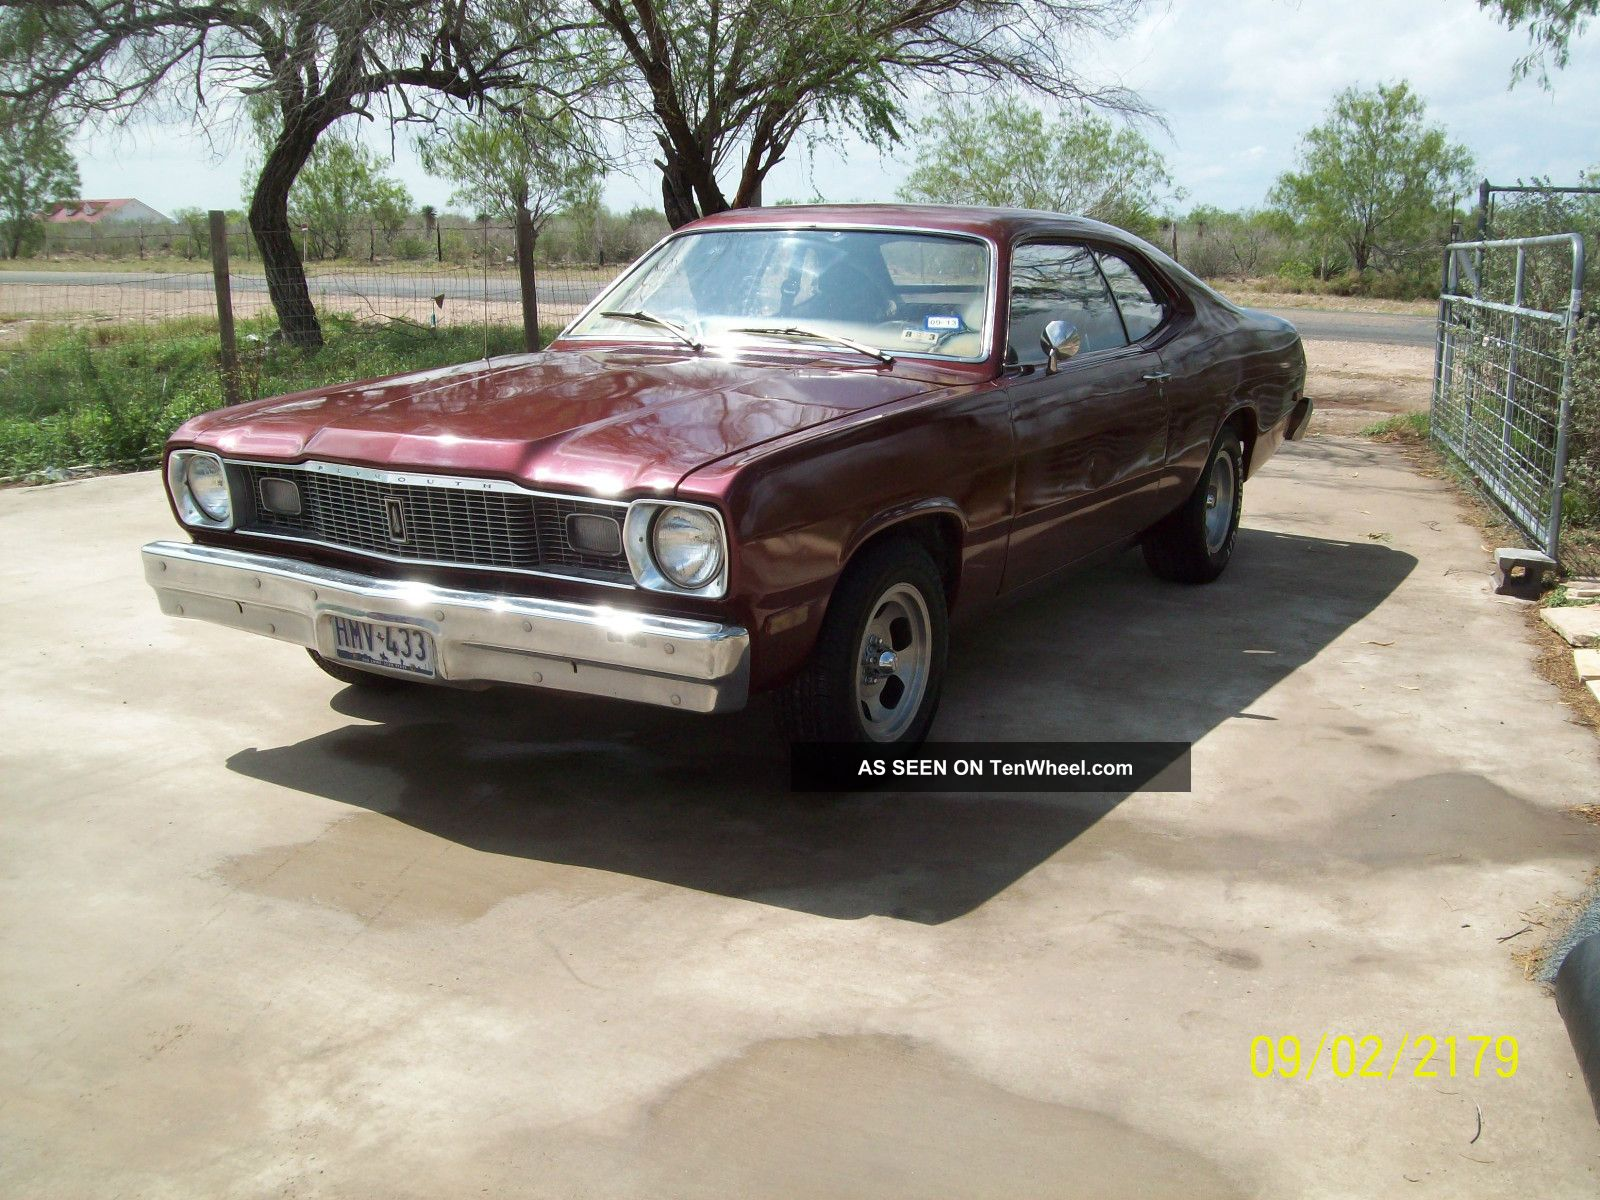 1976 Plymouth Duster Sport Coupe Factory 4 Speed Duster photo